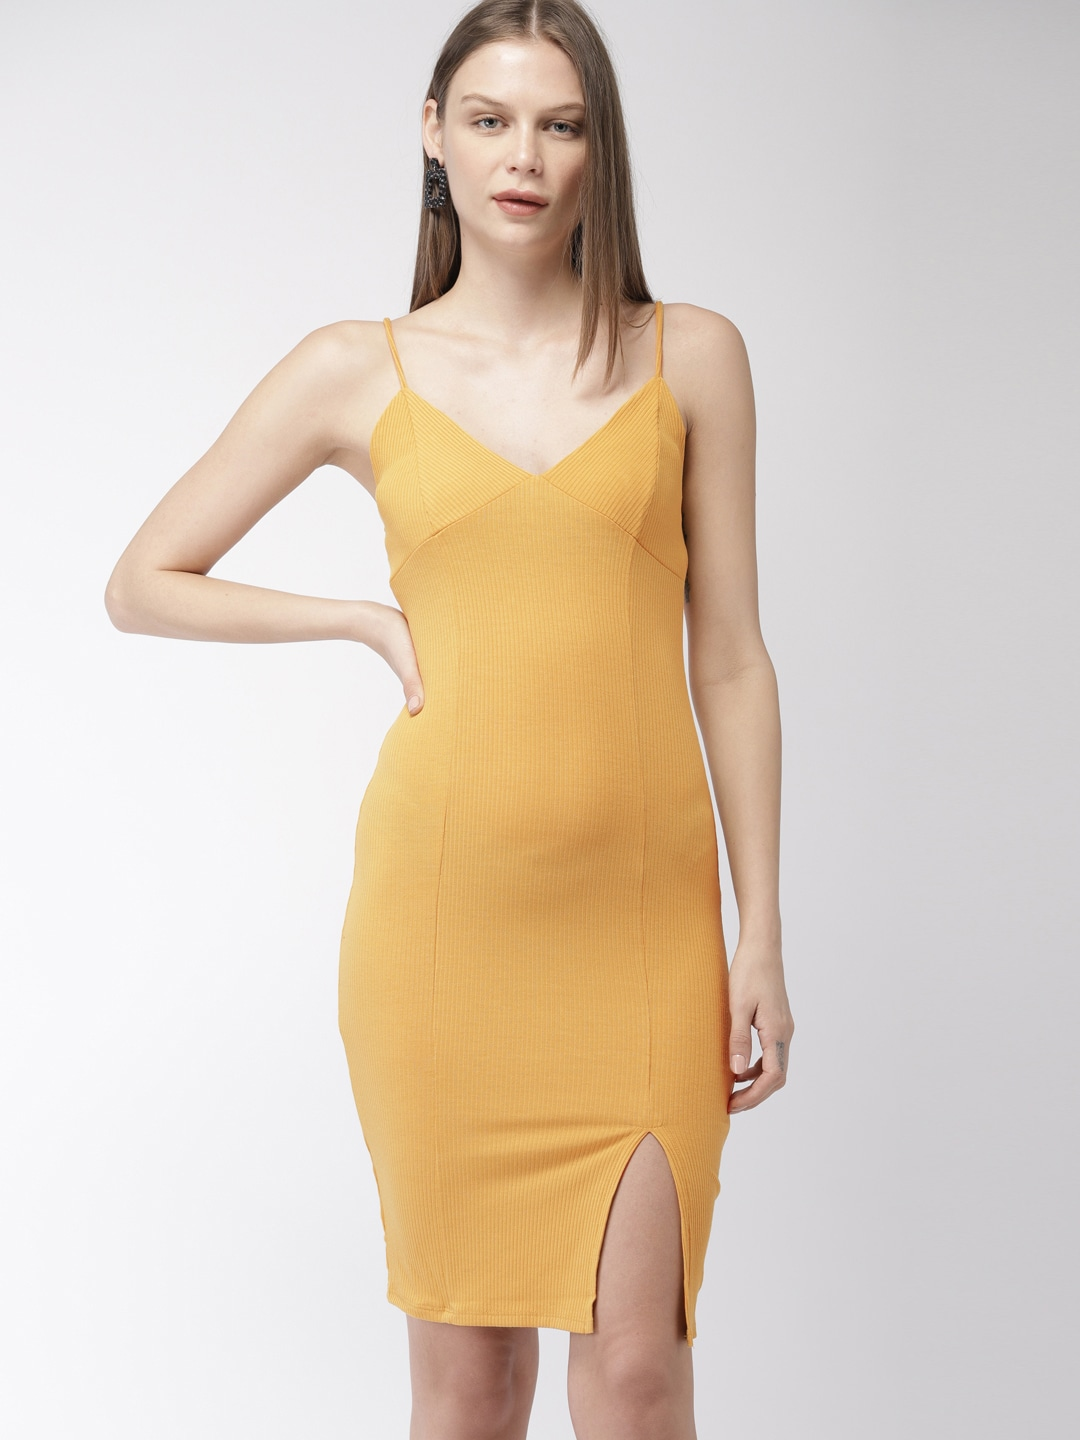 2a84ea27c27 Bodycon Dress - Buy Stylish Bodycon Dresses Online